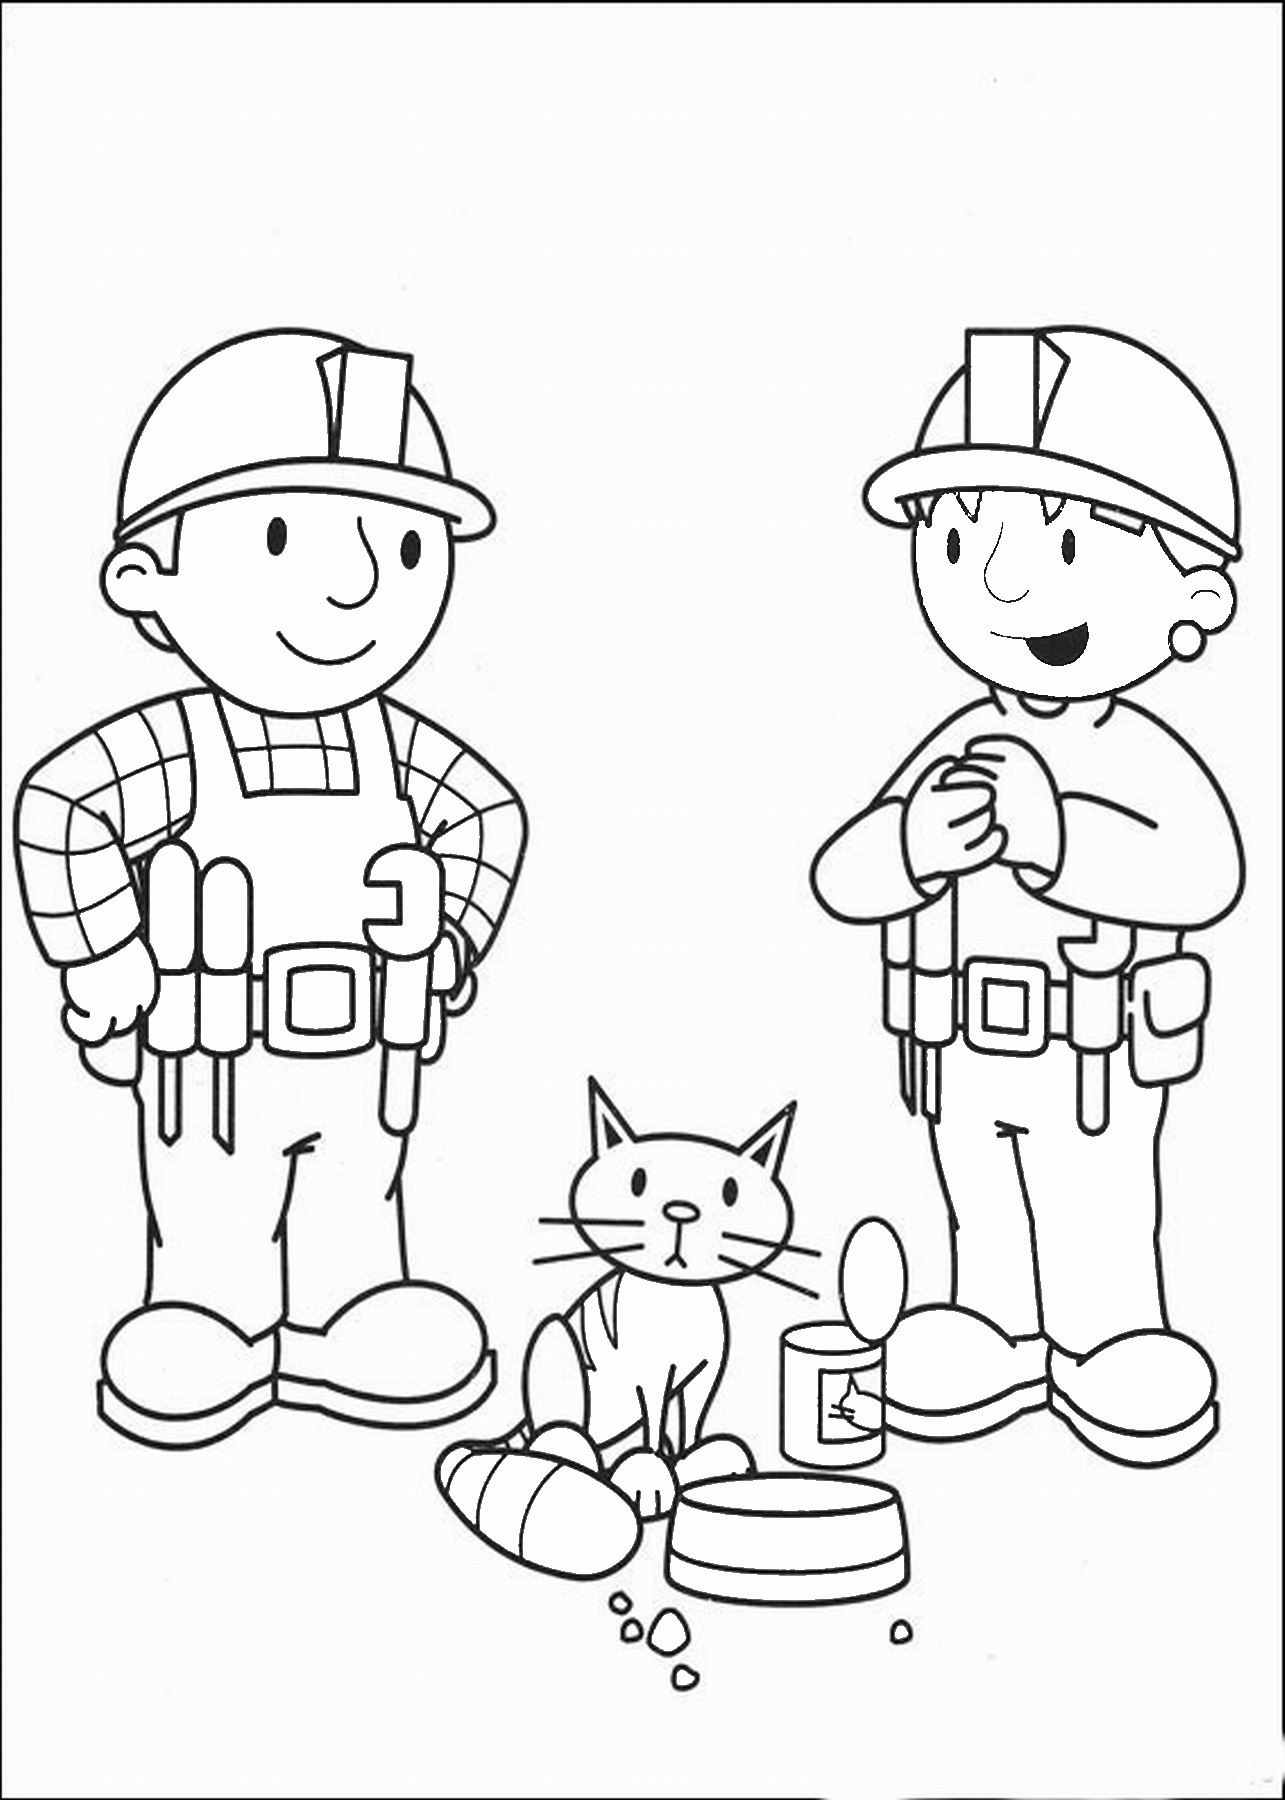 builders coloring pages - photo#22